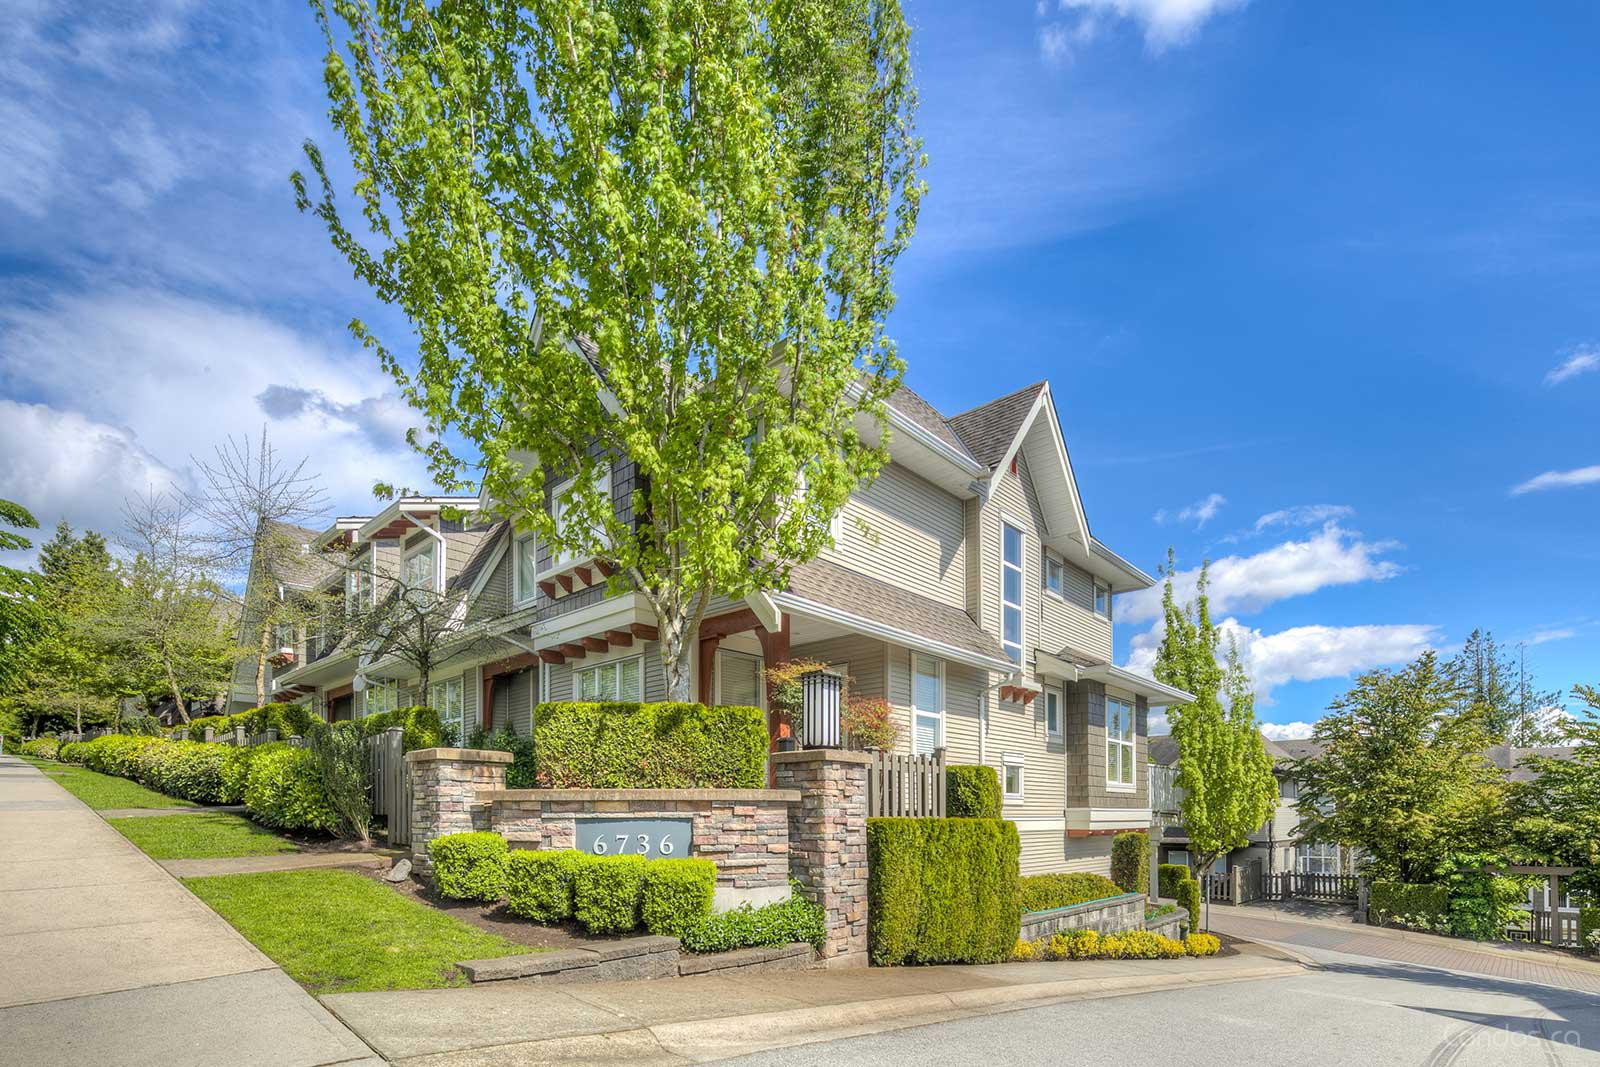 Southpointe at 6736 Southpoint Dr, Burnaby 1